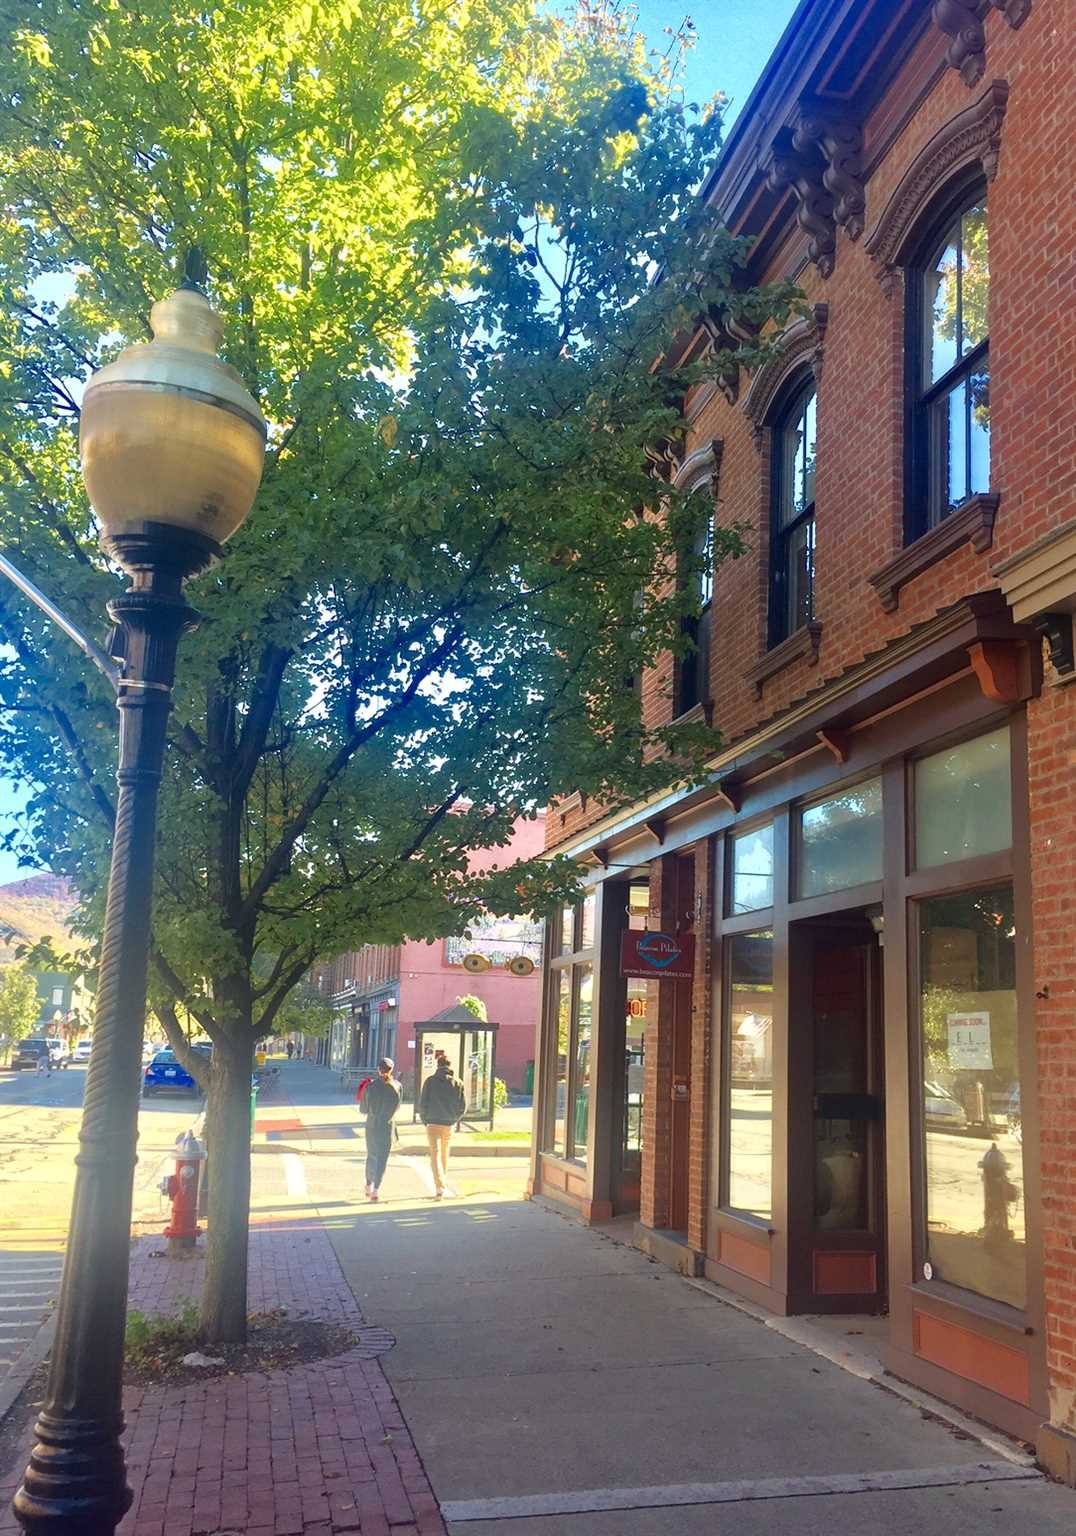 Commercial for Sale at 185 MAIN Street 185 MAIN Street Beacon, New York 12508 United States